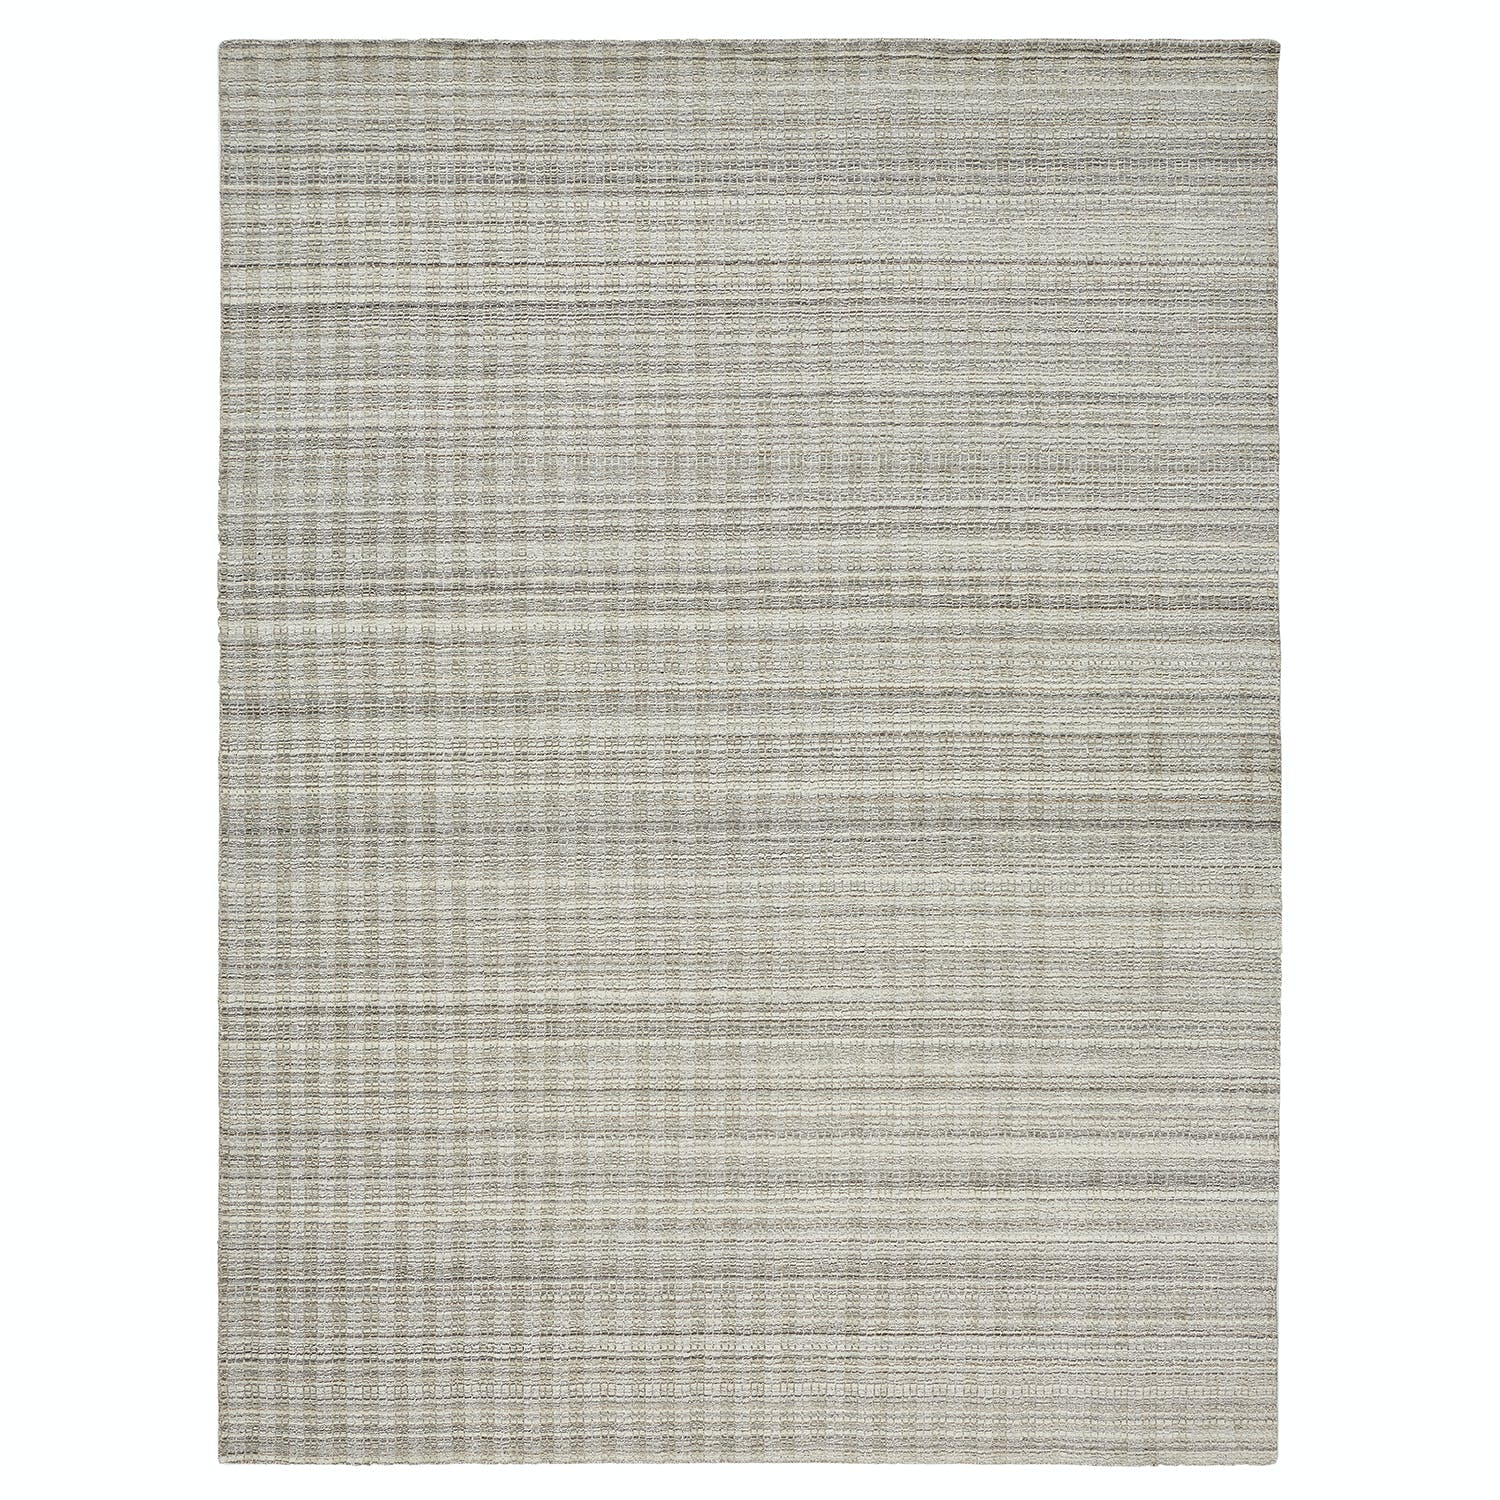 Contemporary Geometric Rug-9'x12'